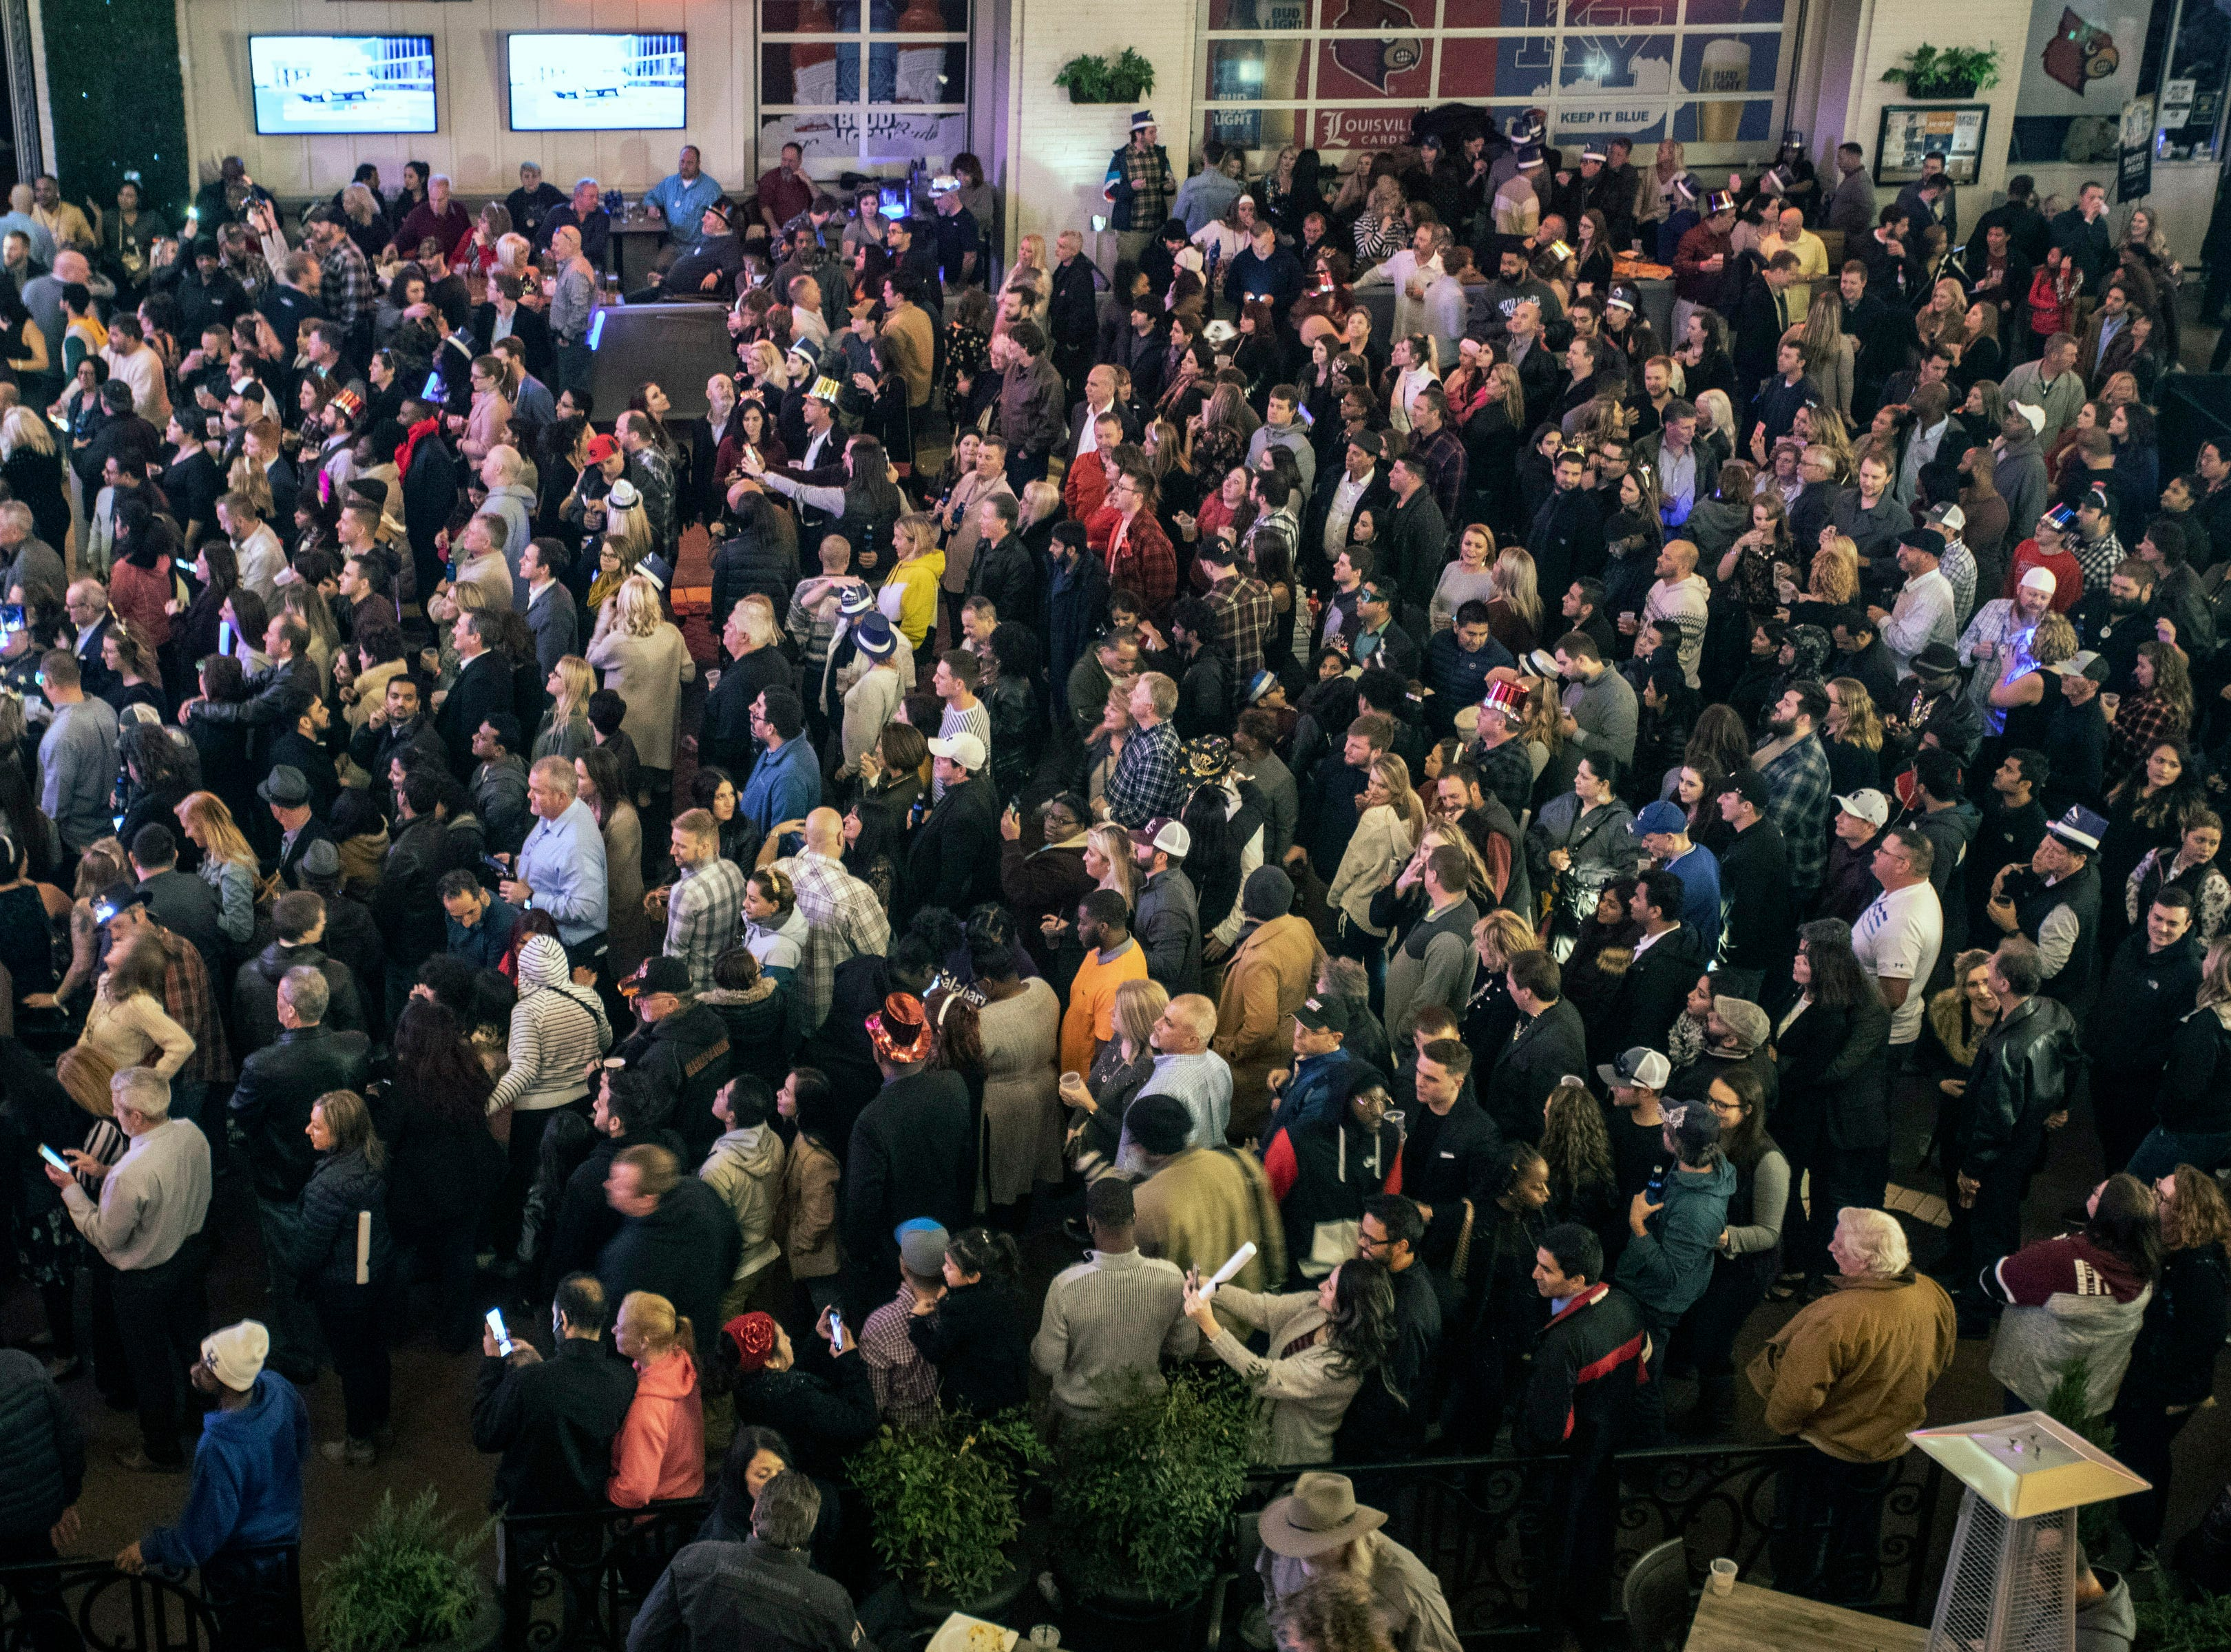 Fourth Street Live was packed with revelers ready to ring in the new year on Monday night. December 31, 2018